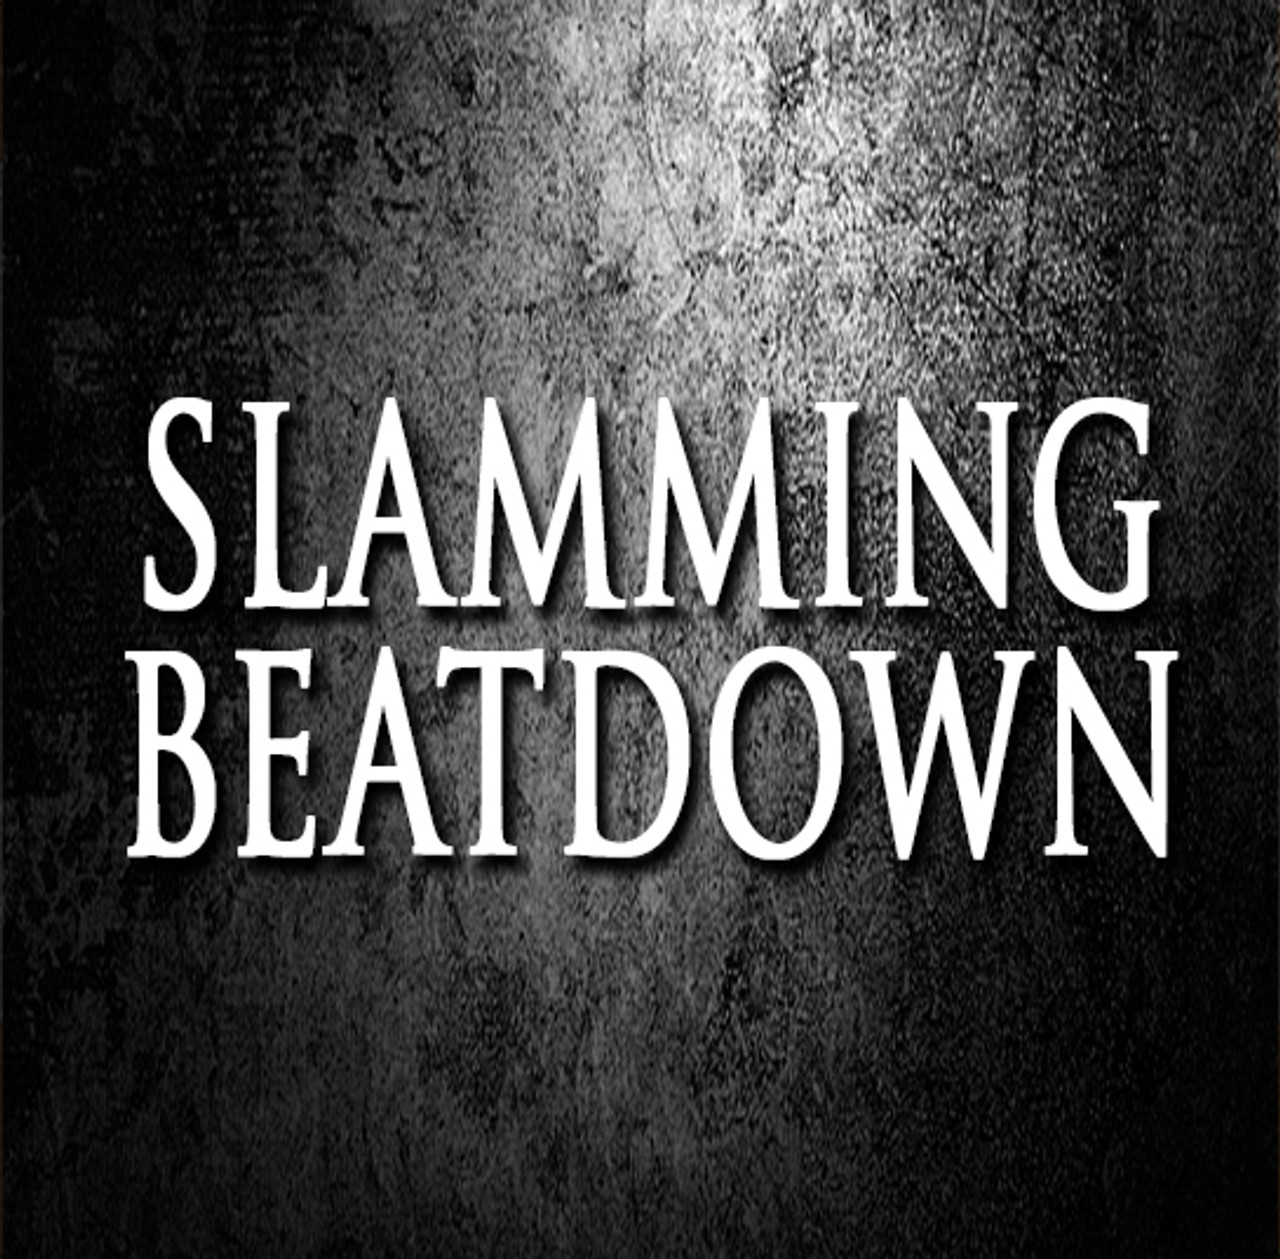 Slamming Beatdown